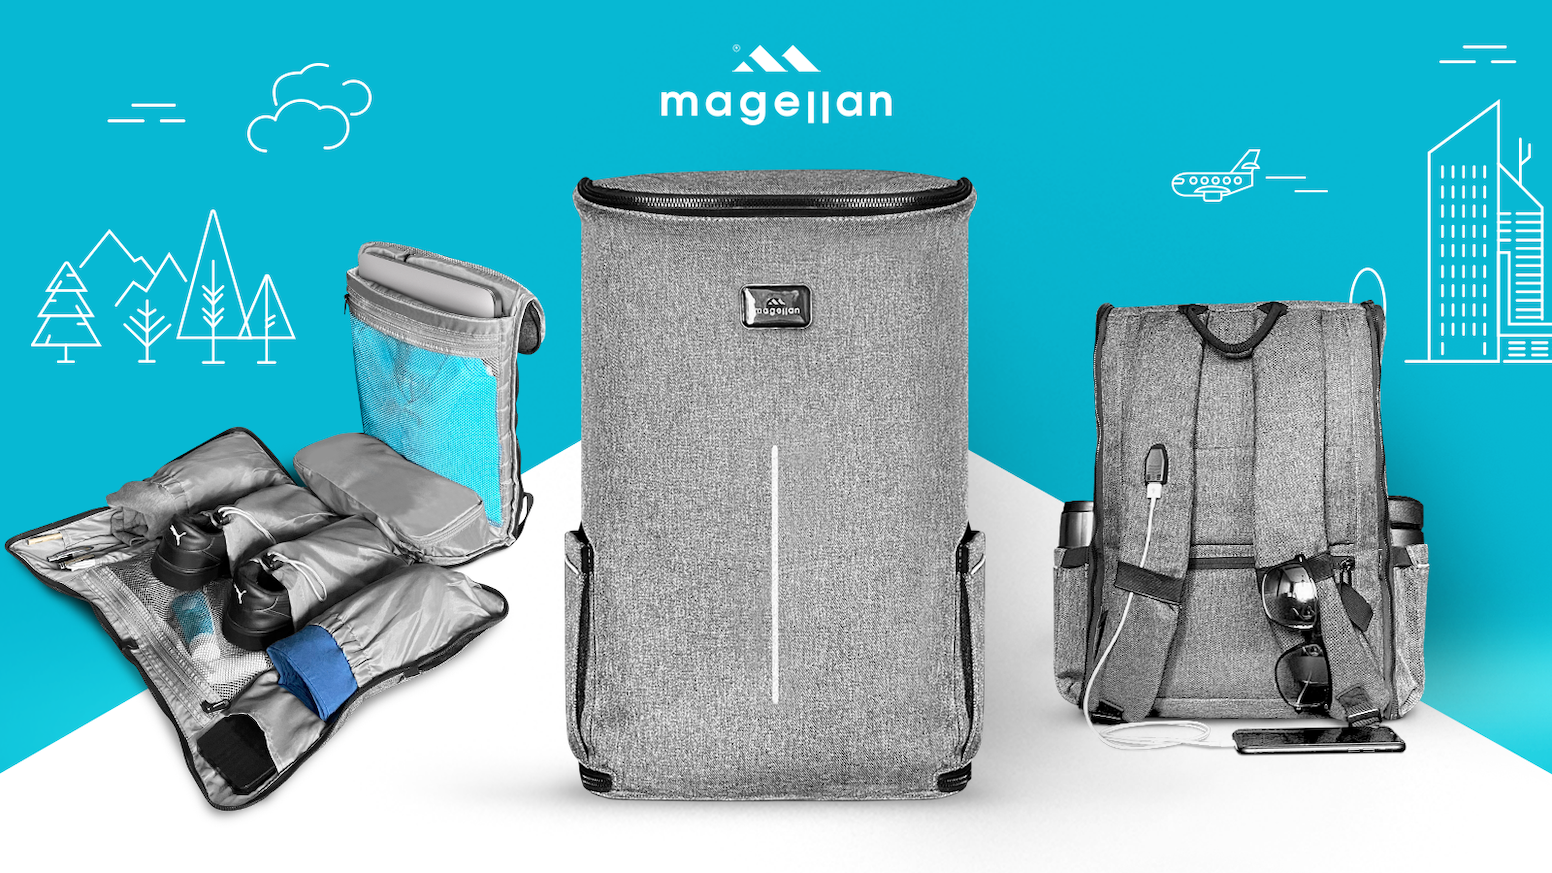 Magellan Backpack is your new favorite travelling companion that helps you archive (YES-YES just like a WinRar) everything you need